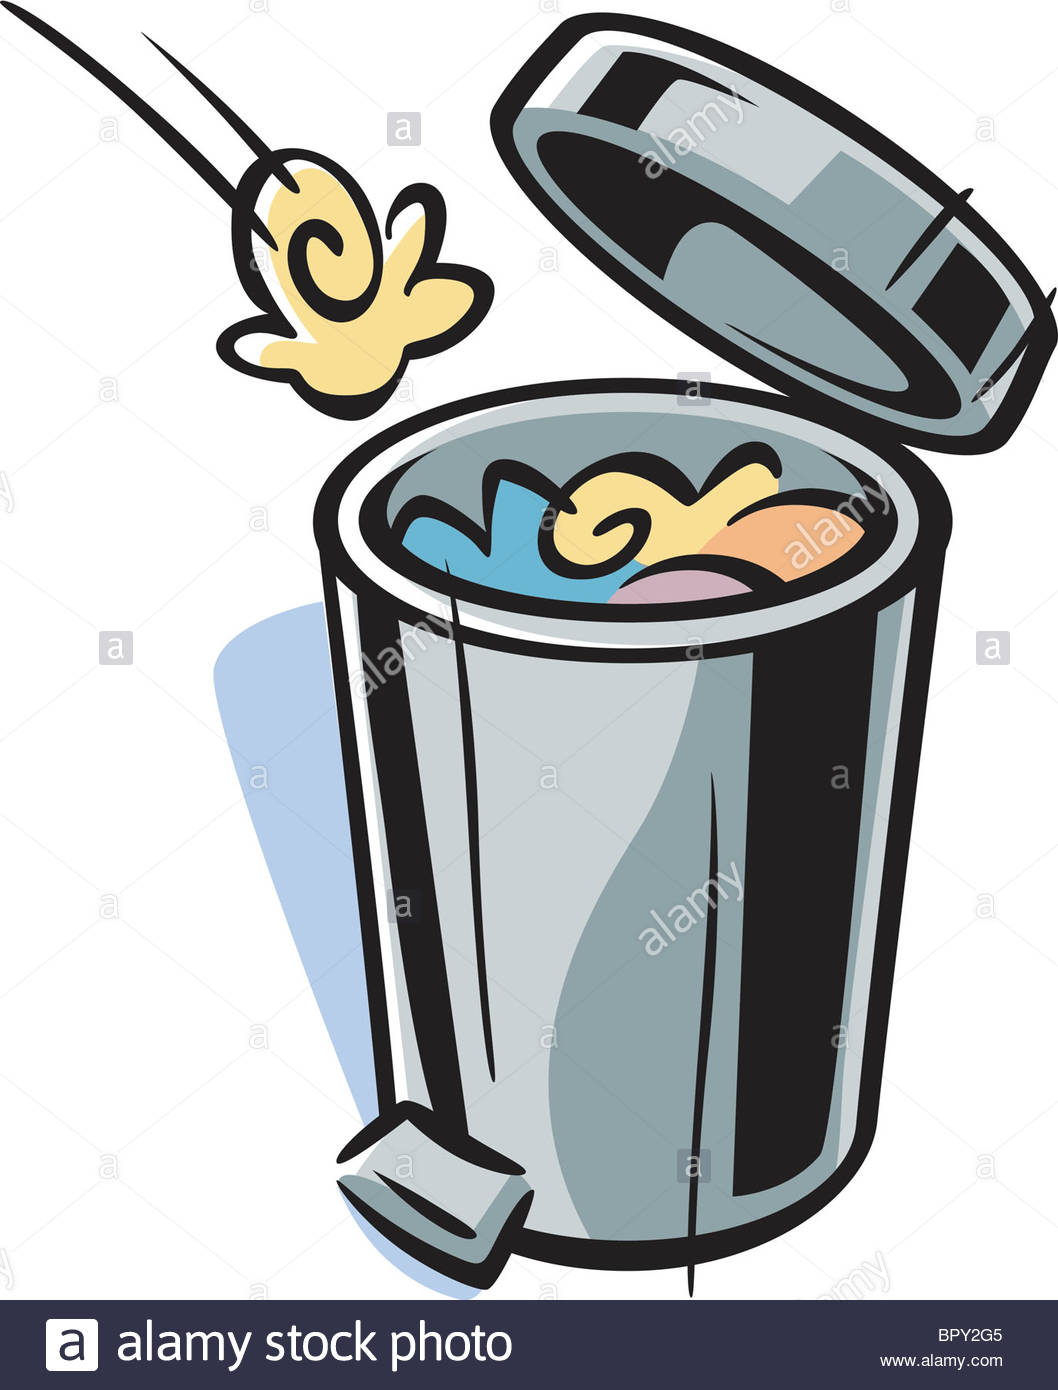 hight resolution of 1058x1390 cartoon drawing of a trash can stock photo royalty free image